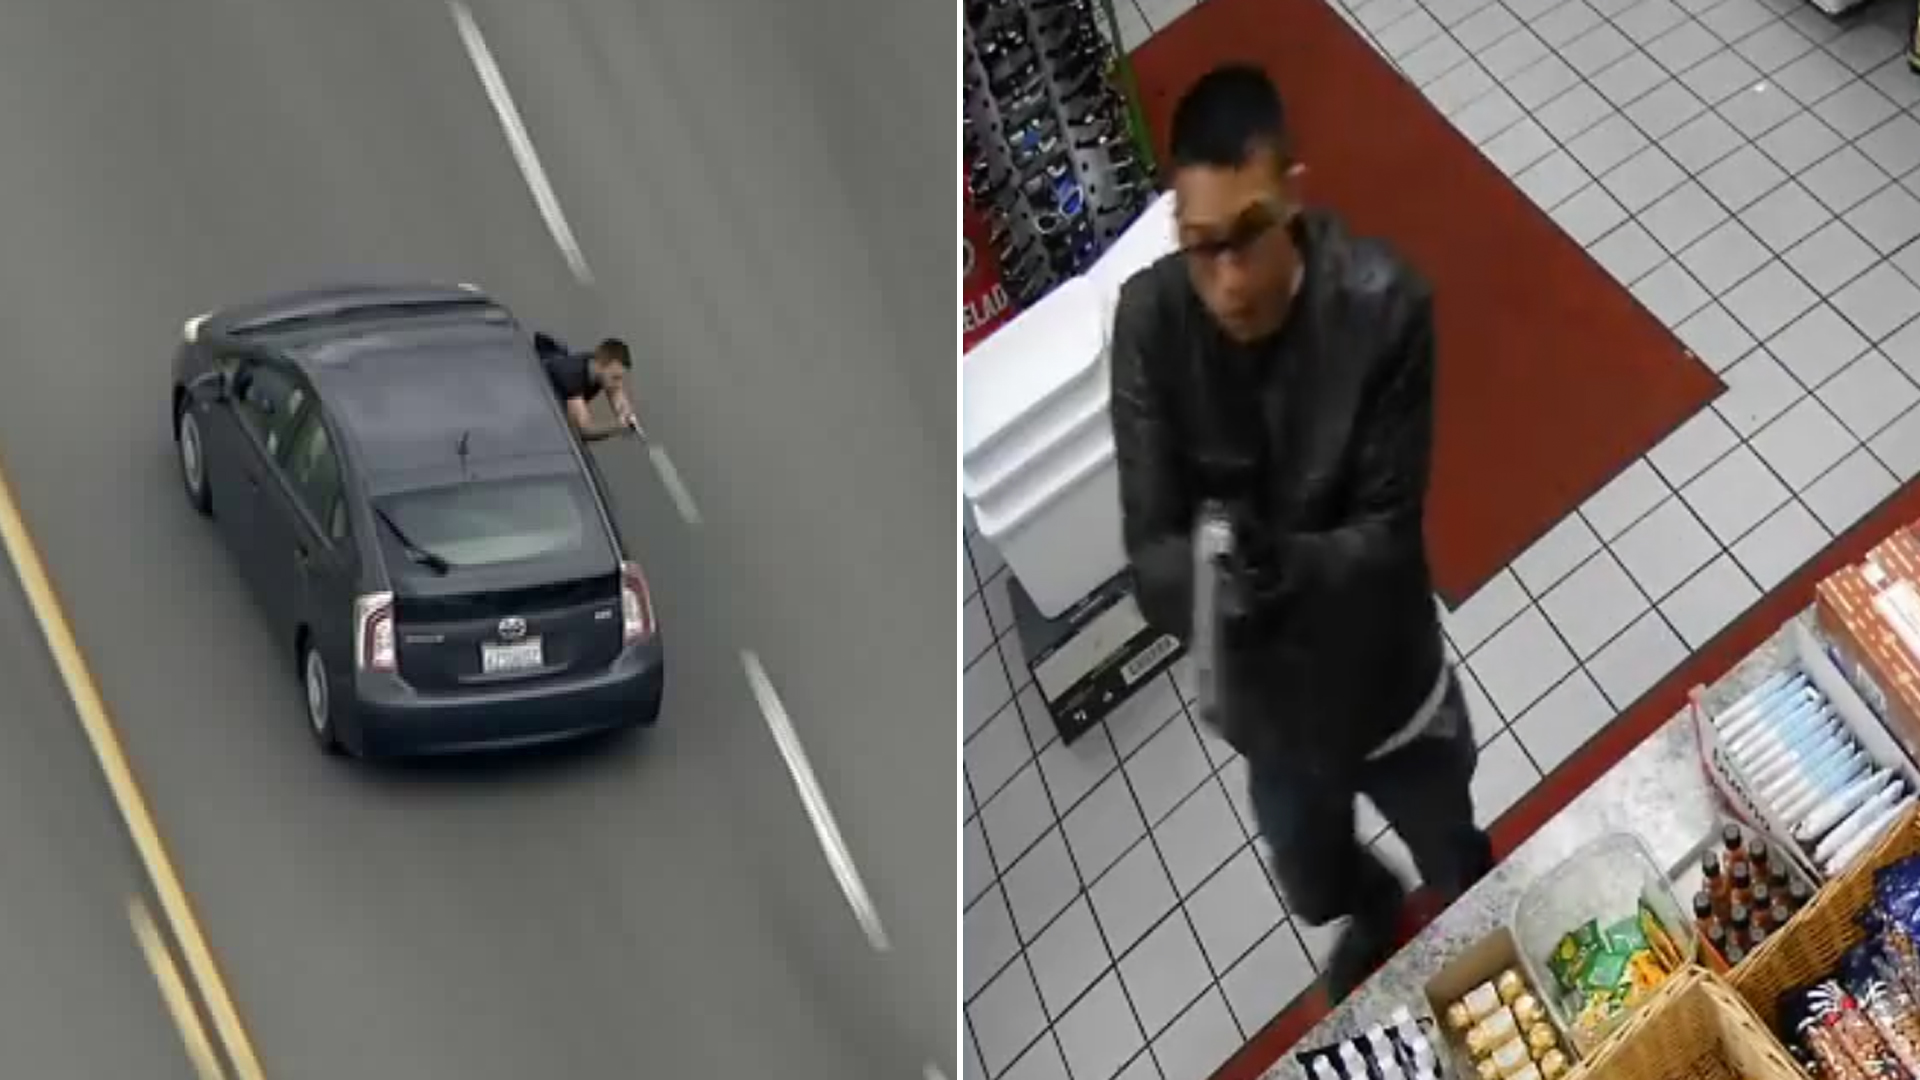 A man, left, points a gun at officers during a pursuit that began in Maywood and ended in Vernon on May 10, 2019. A homicide suspect points a gun at a clerk in Downey on May 7, 2019. (Credit: Sky5/Downey police)